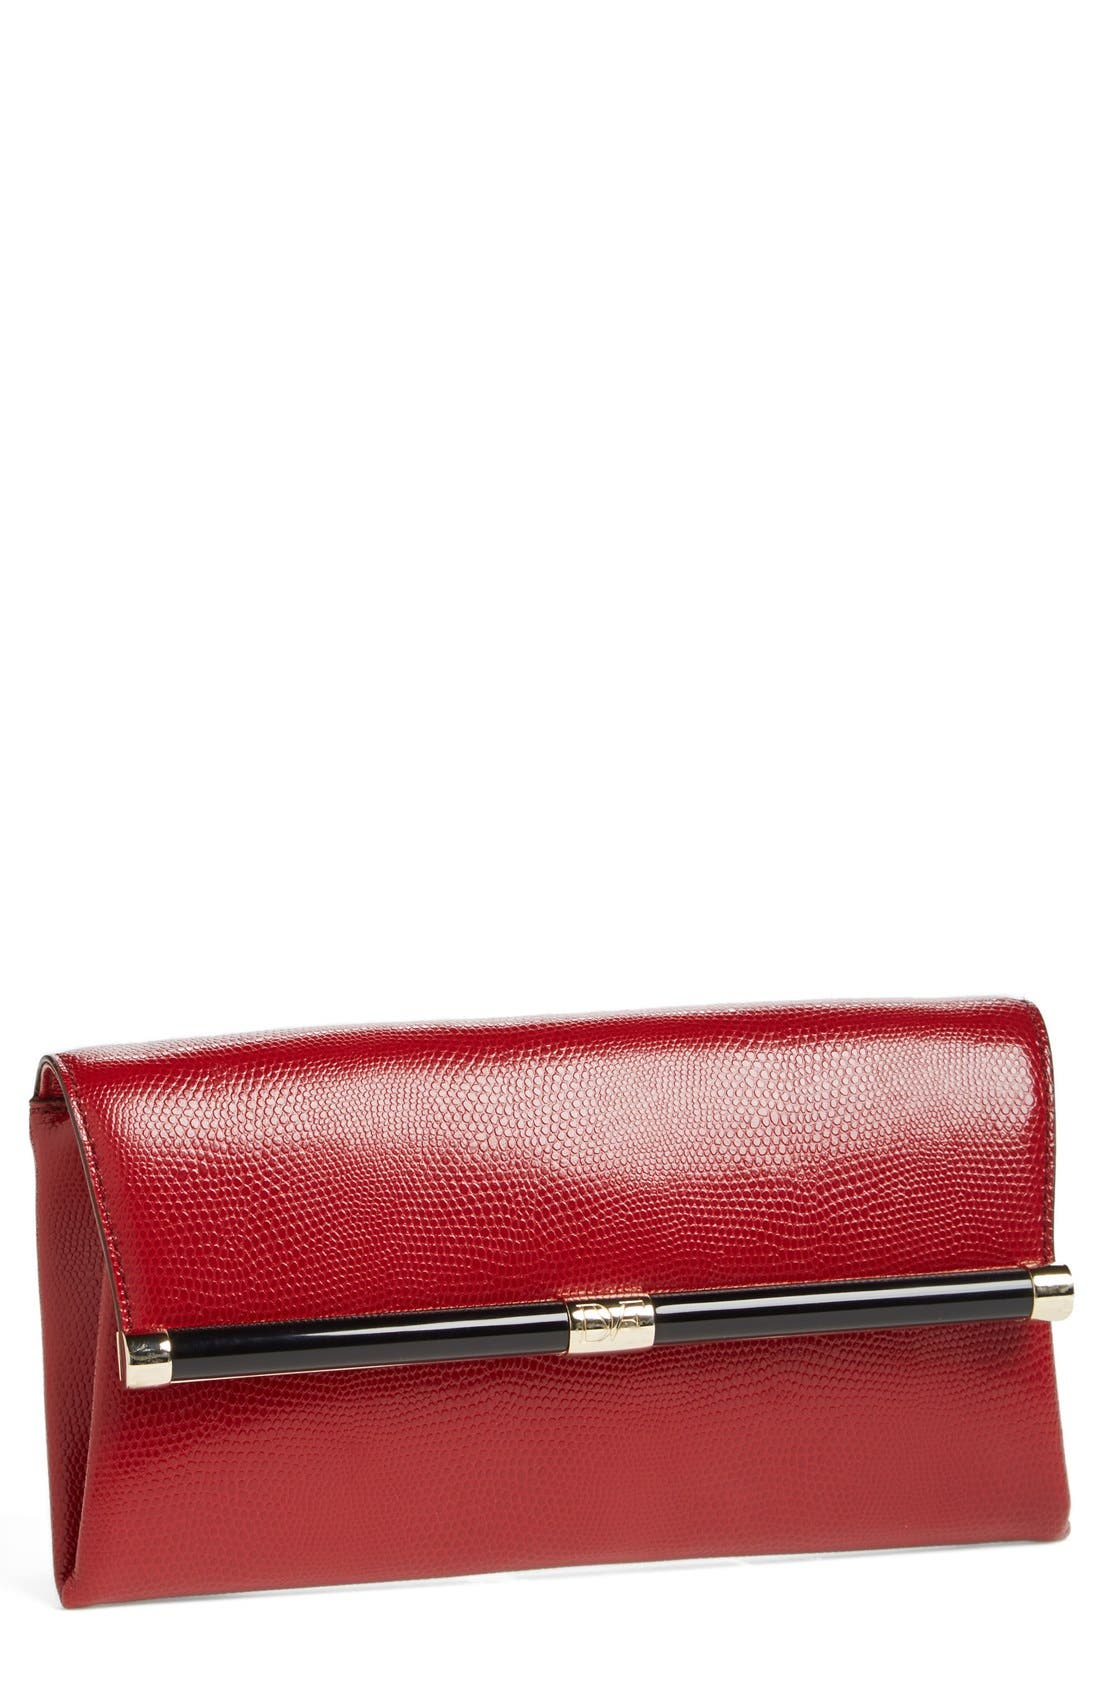 Main Image - Diane von Furstenberg '440' Embossed Leather Envelope Clutch